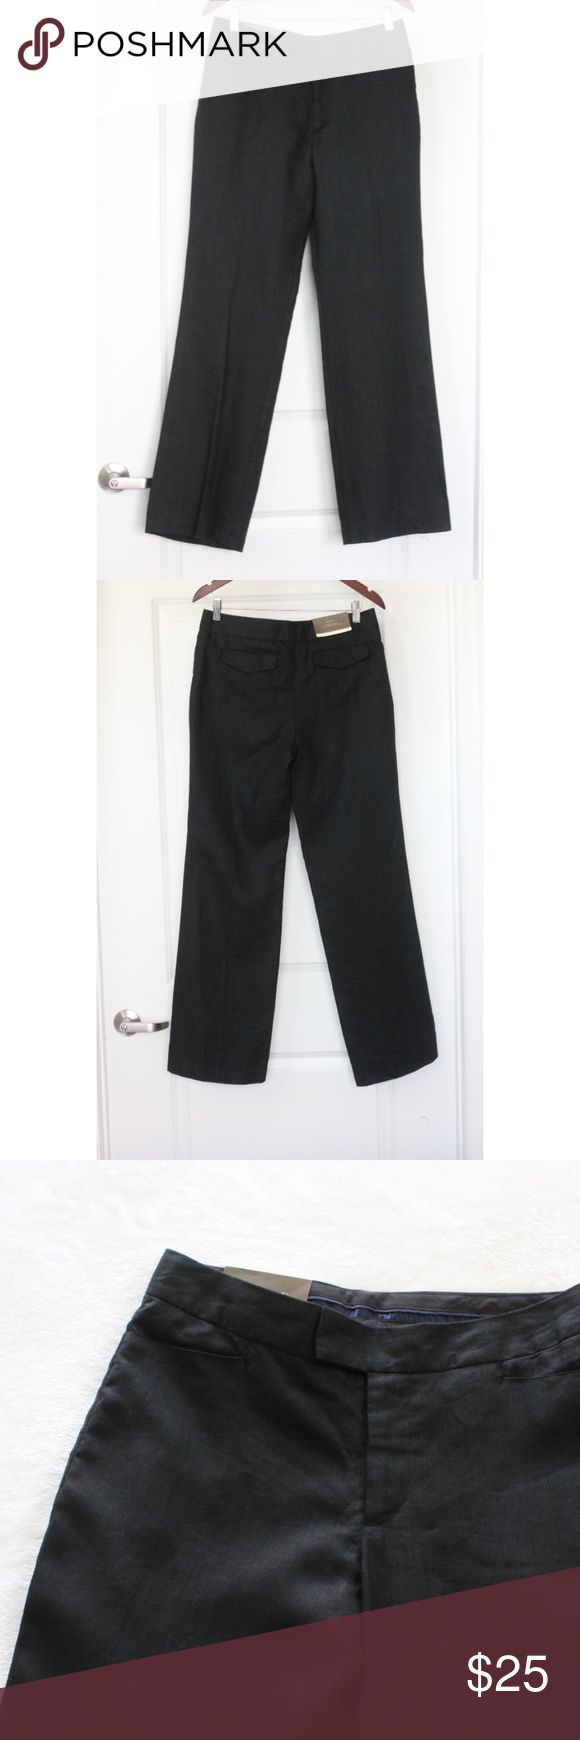 "NEW MERONA Navy Blue Dress Pants Women's Linen NEW MERONA Navy Blue Dress Pants Women's Linen Bootcut Trousers Linen Size 8 Fully lined New with tag attached! From a pet & smoke free home  Measurements (approx):  inseam 31"" front rise 10"" waist 32"" hips 39"" leg opening (flat) 10"" Fabric:  100% Linen Merona Pants Trousers"